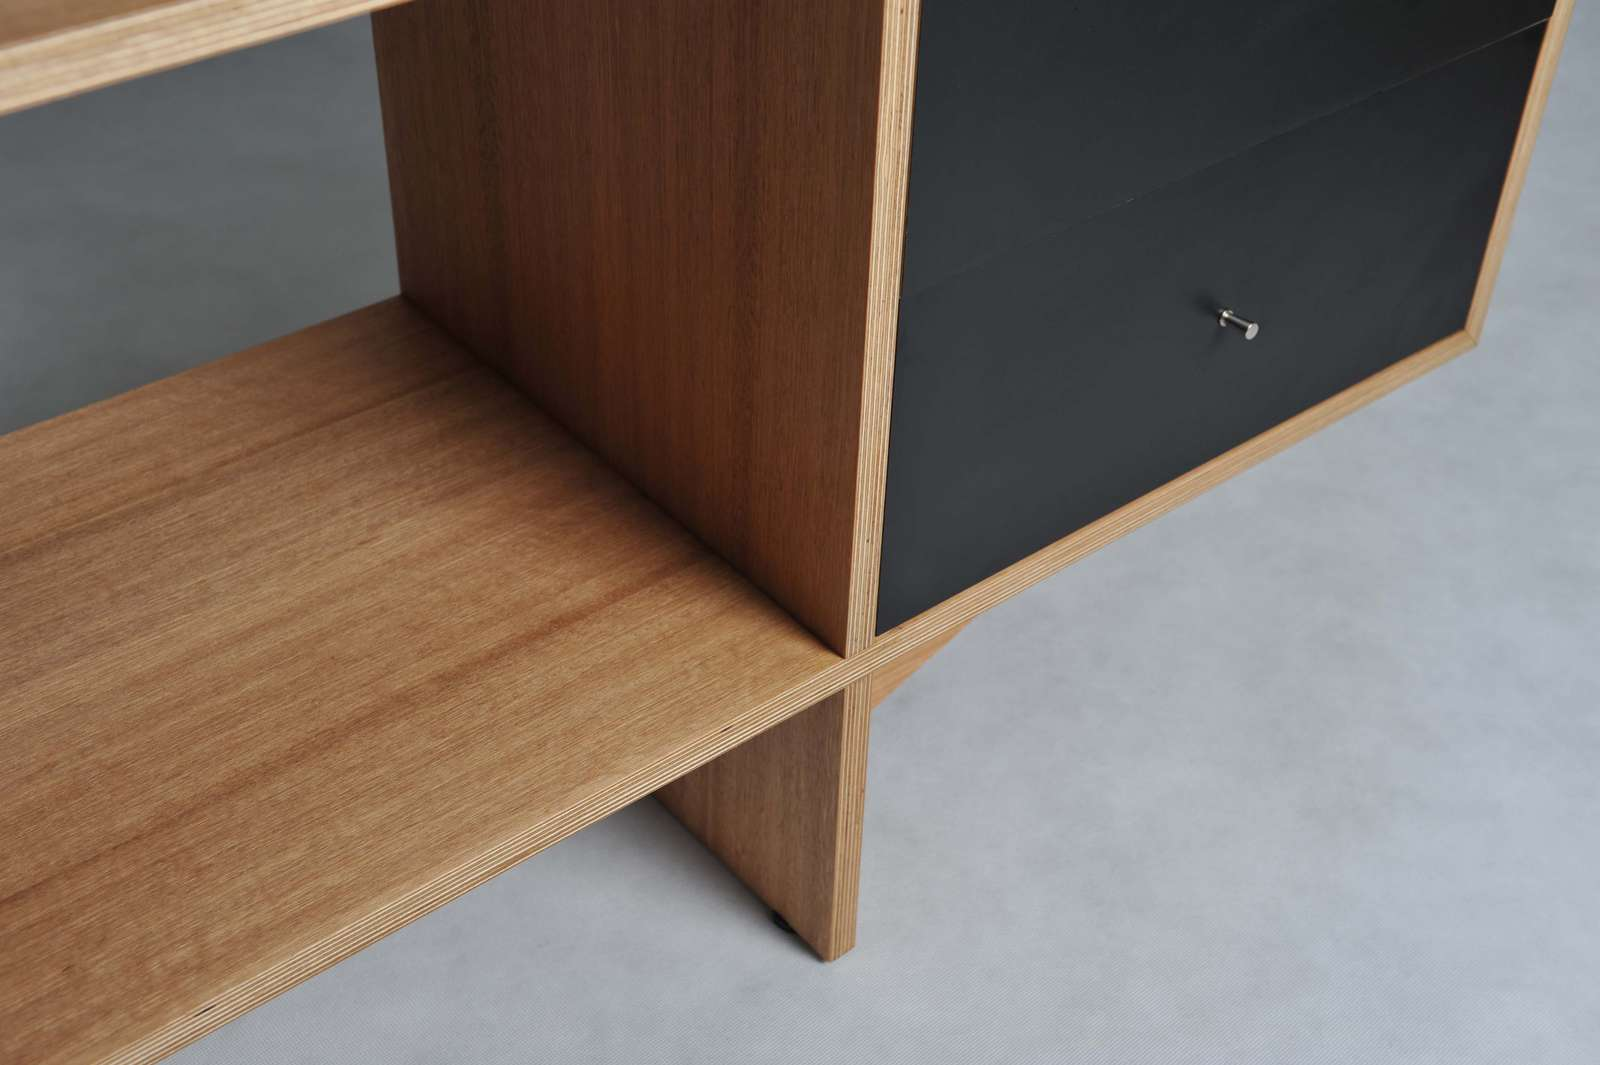 cantilevered-media-cabinet-6 image